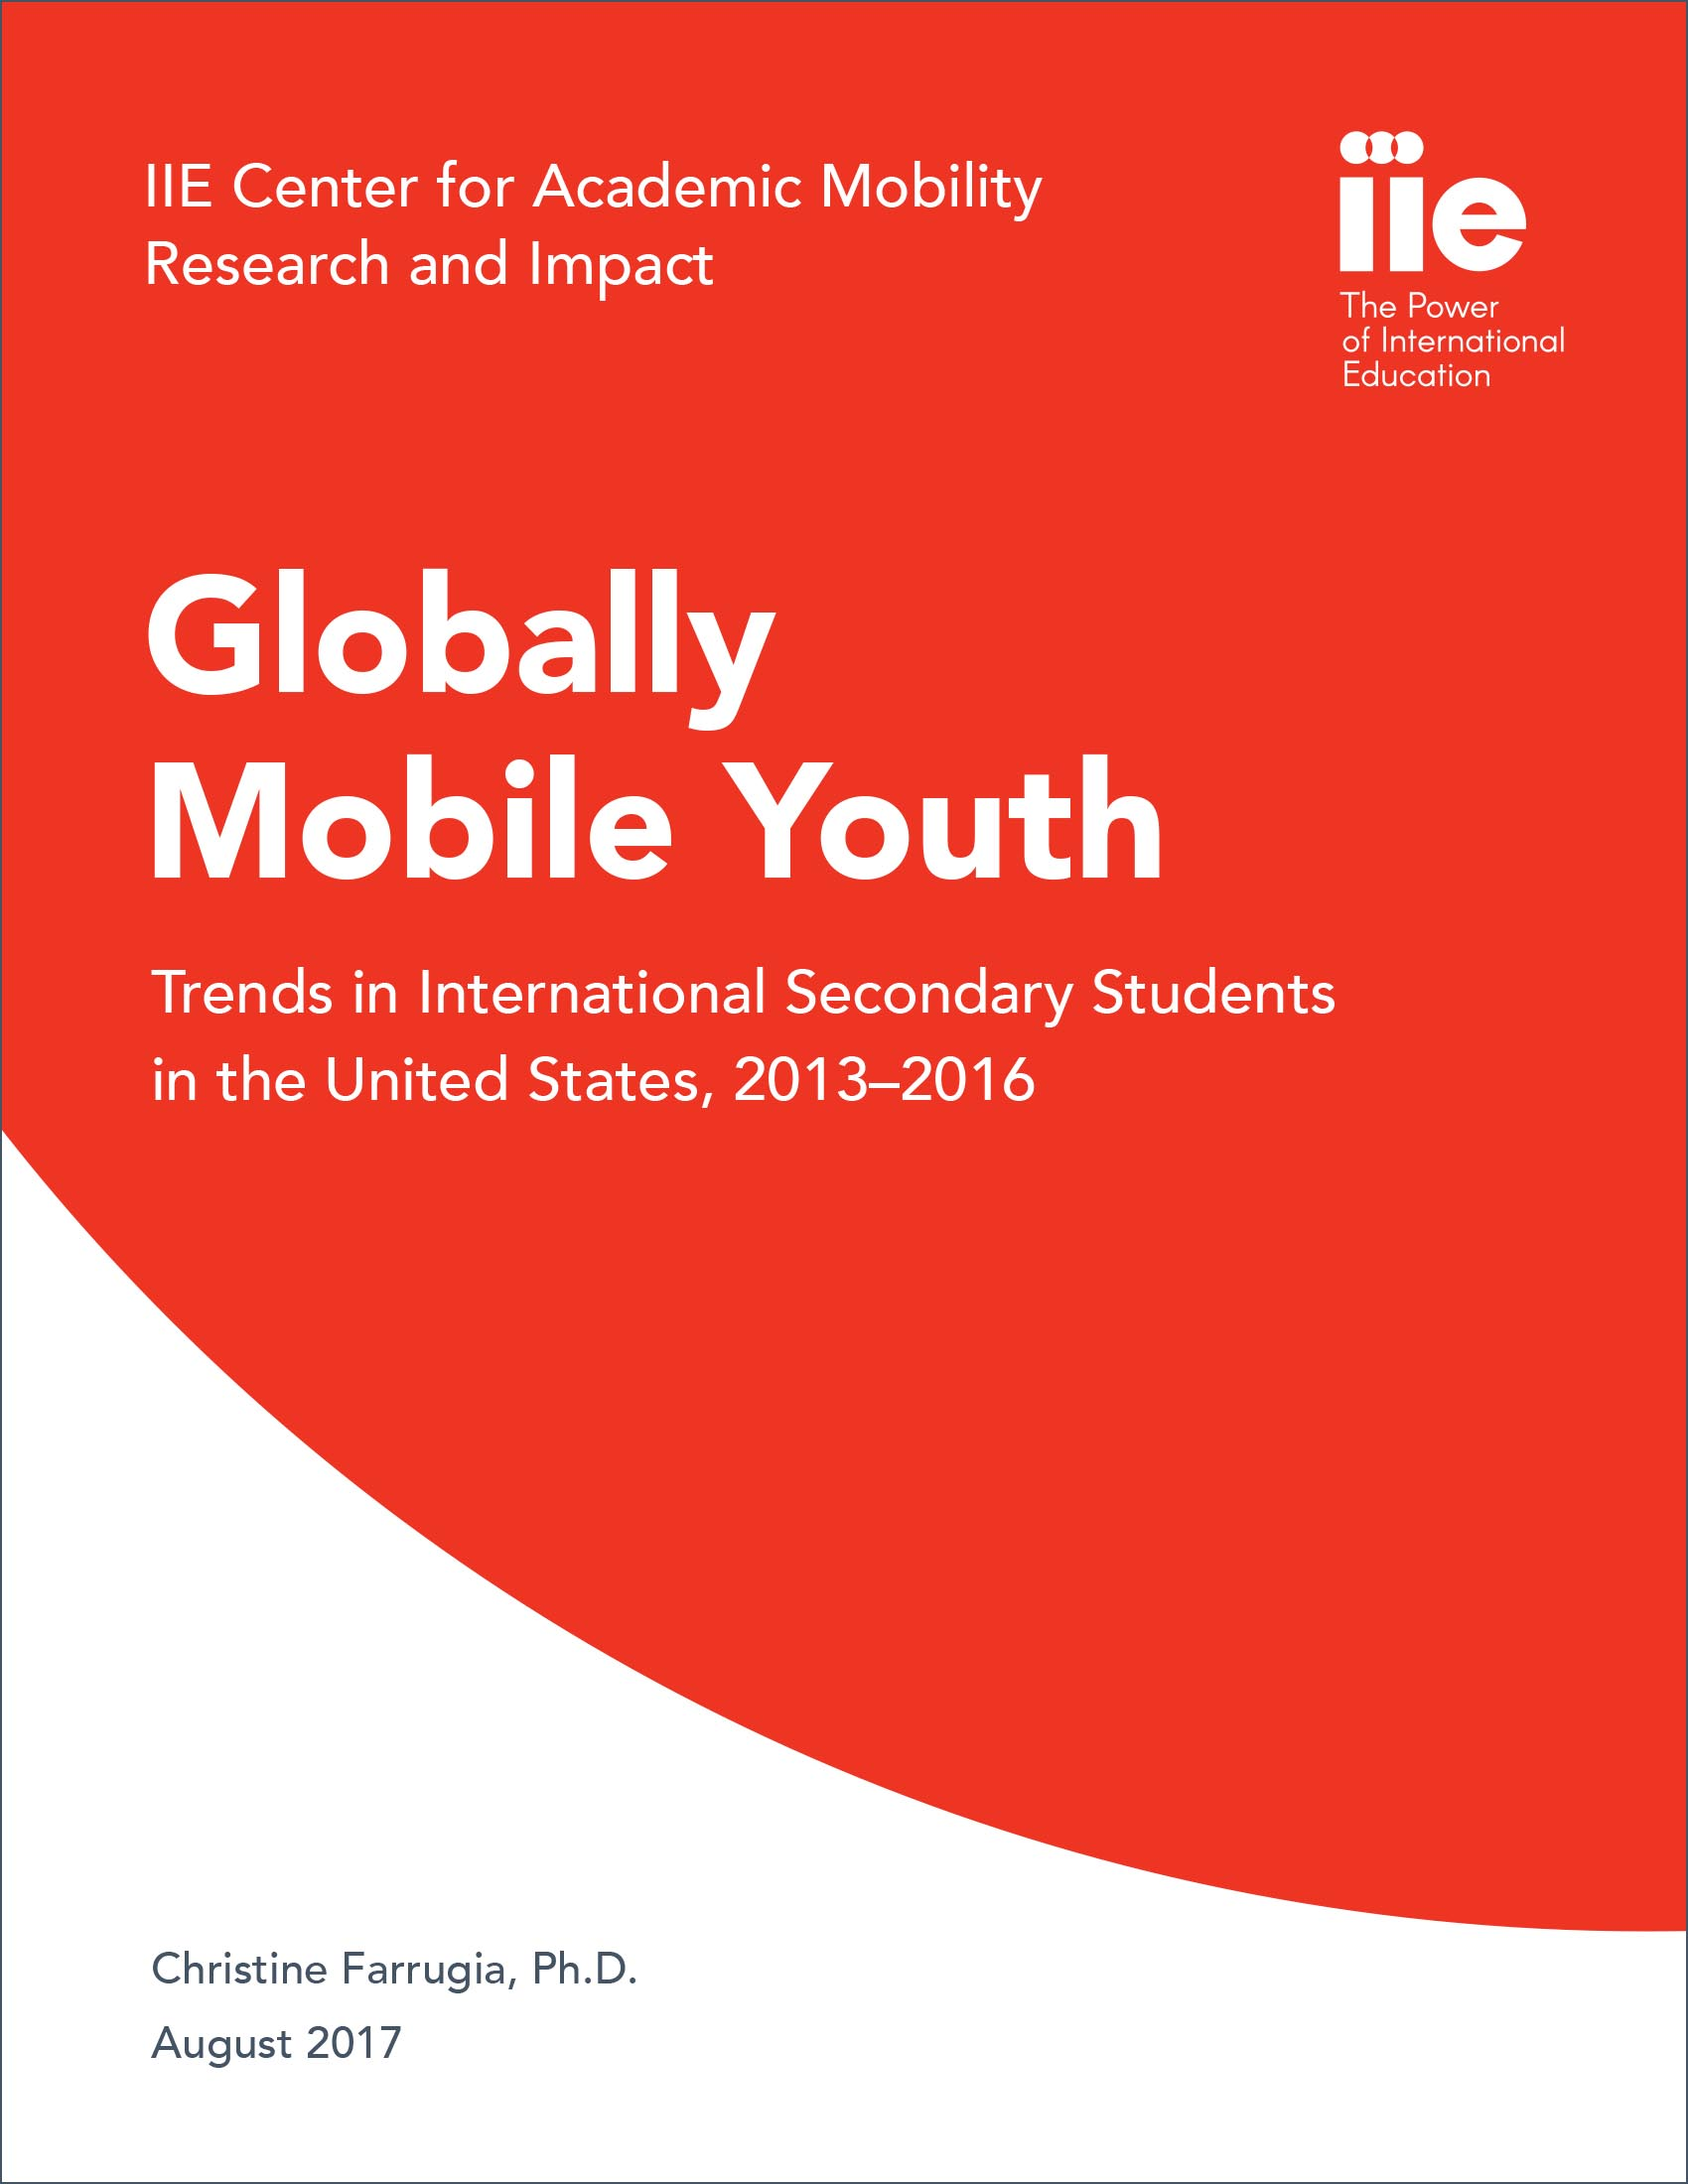 Globally Mobile Youth